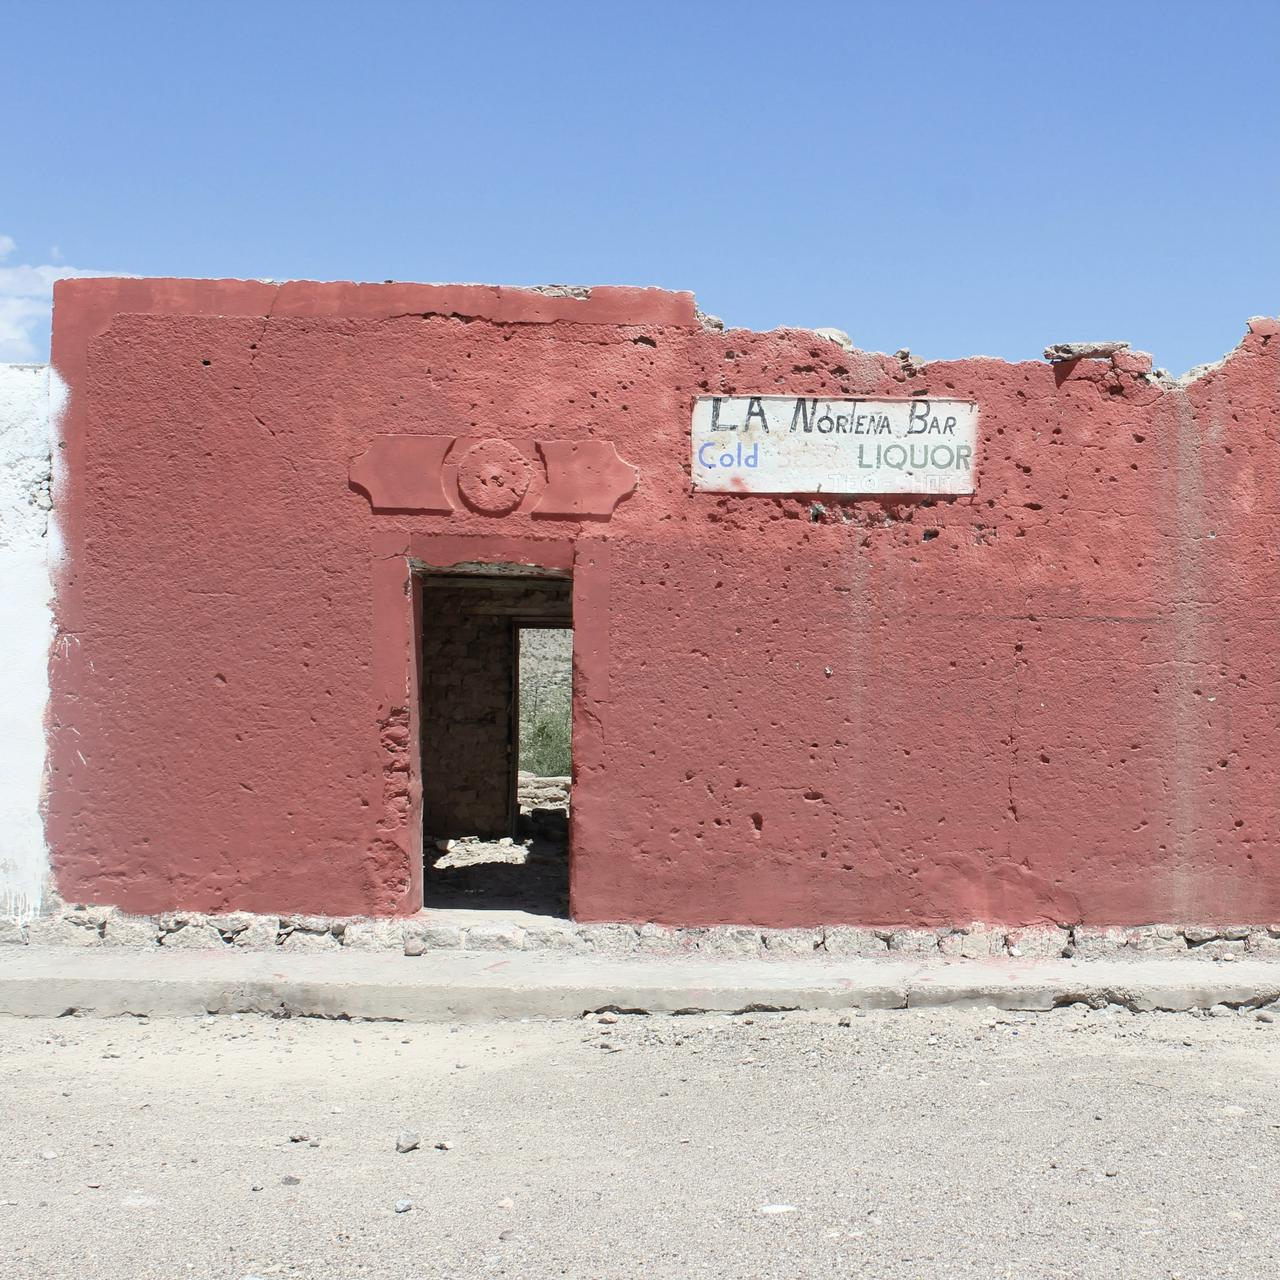 An abandoned bar in Boquillas, Mexico